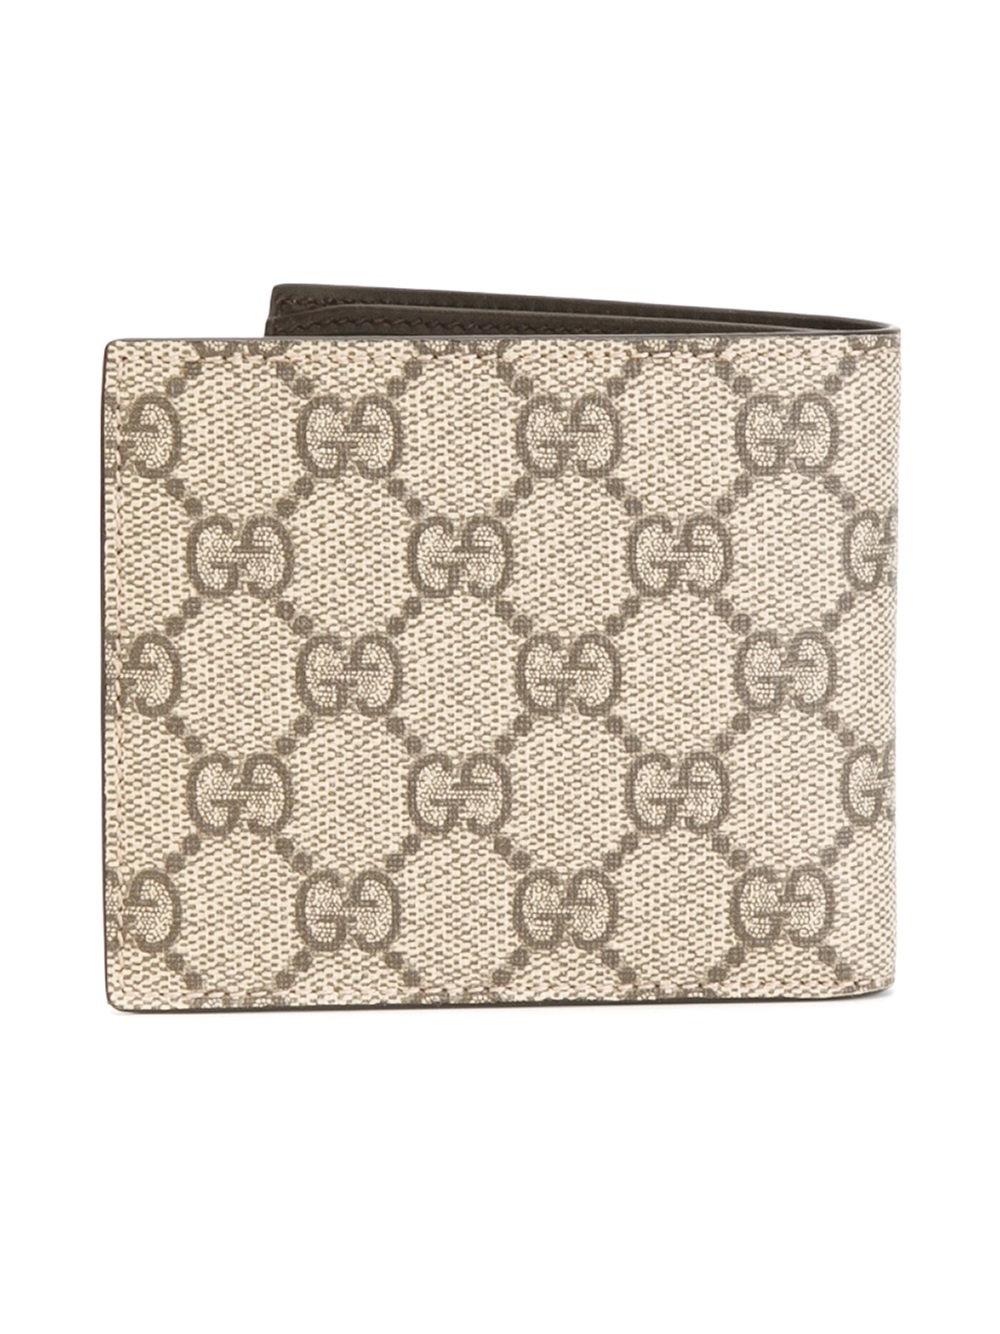 86430a053aeb Gucci Gg Supreme Wallet in Natural for Men - Lyst